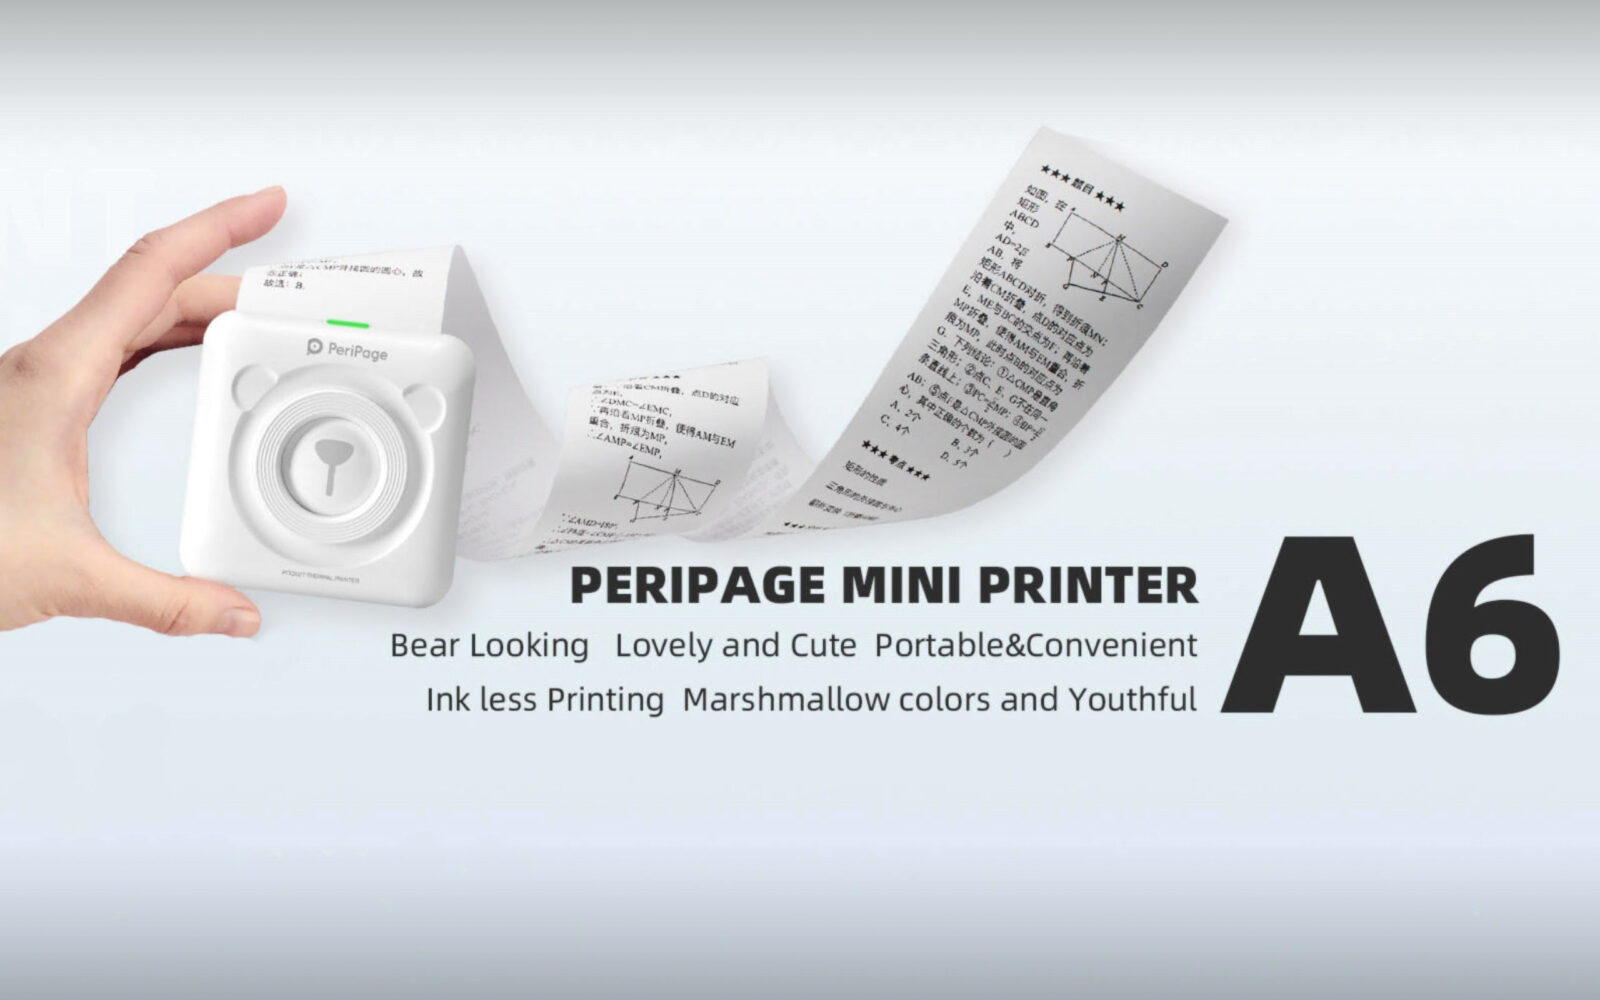 Even if you don't know yet, a pocket thermal printer is what you need